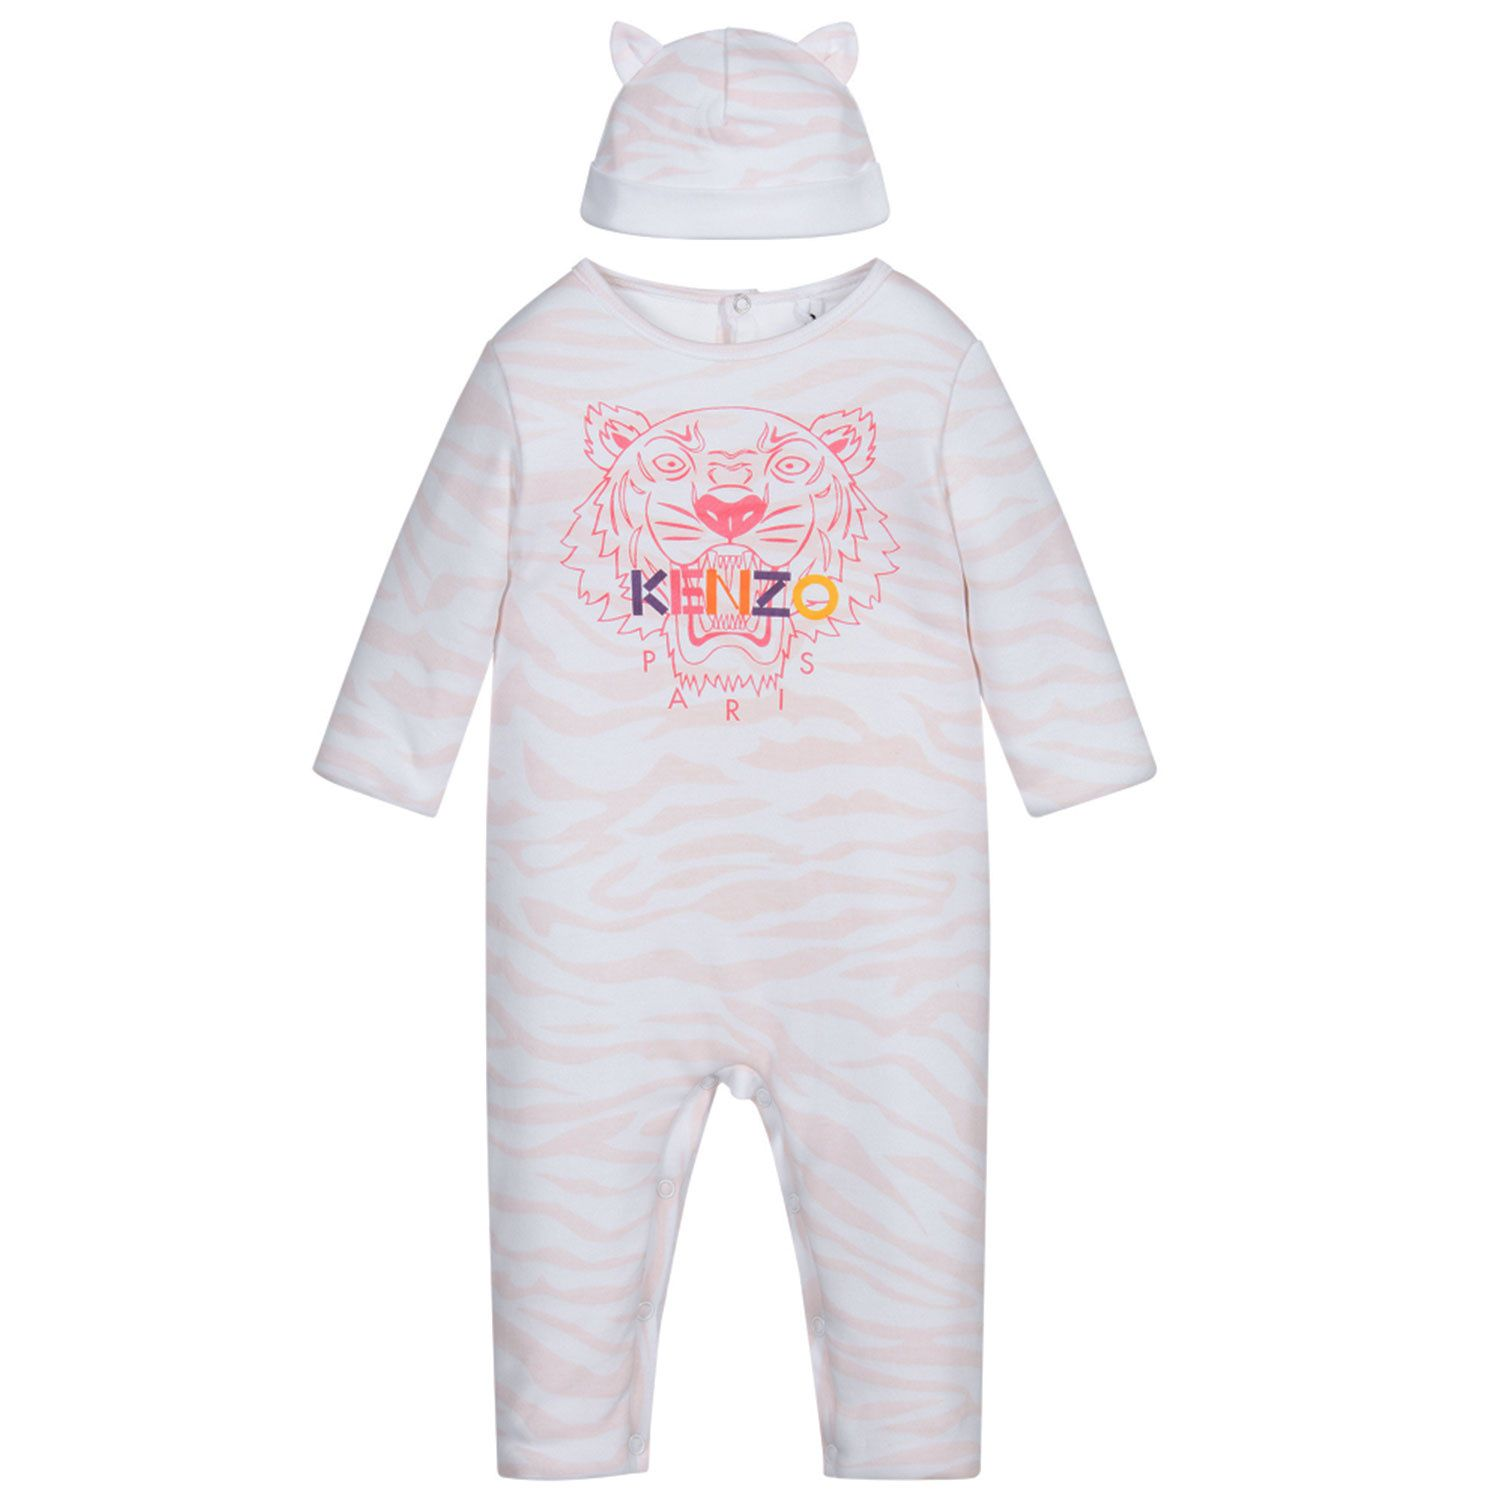 Picture of Kenzo KR99033 baby playsuit light pink